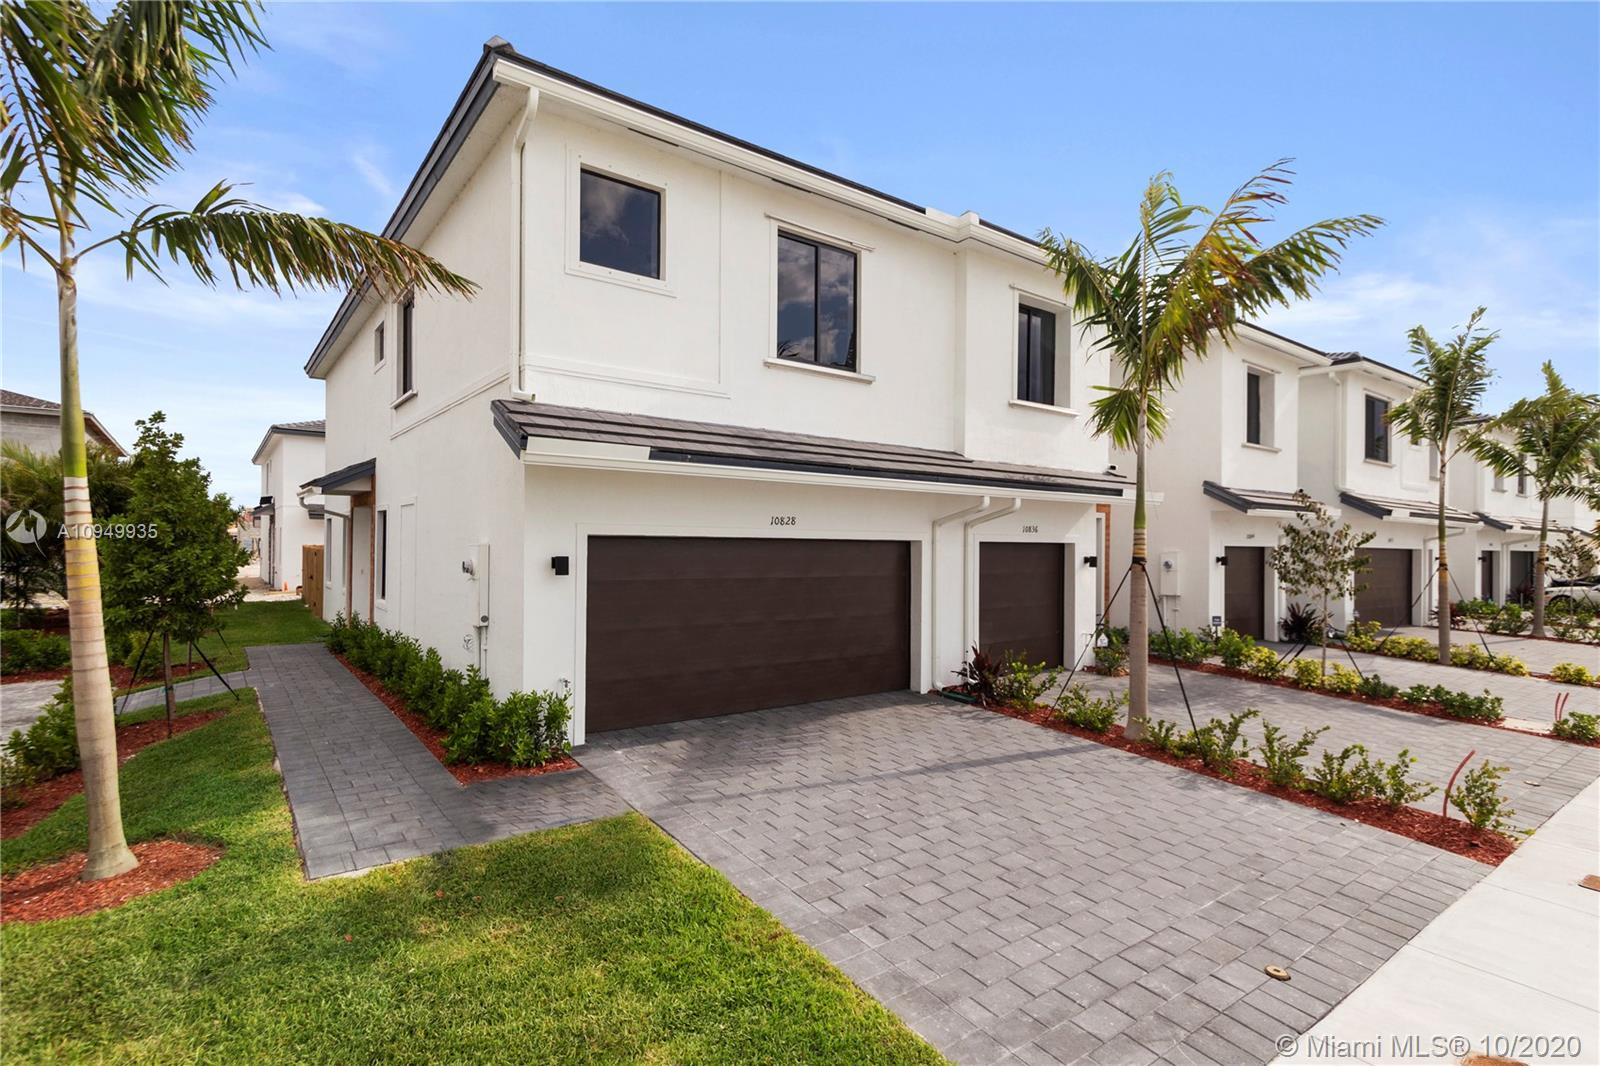 10957 SW 232nd Terr Property Photo - Miami, FL real estate listing